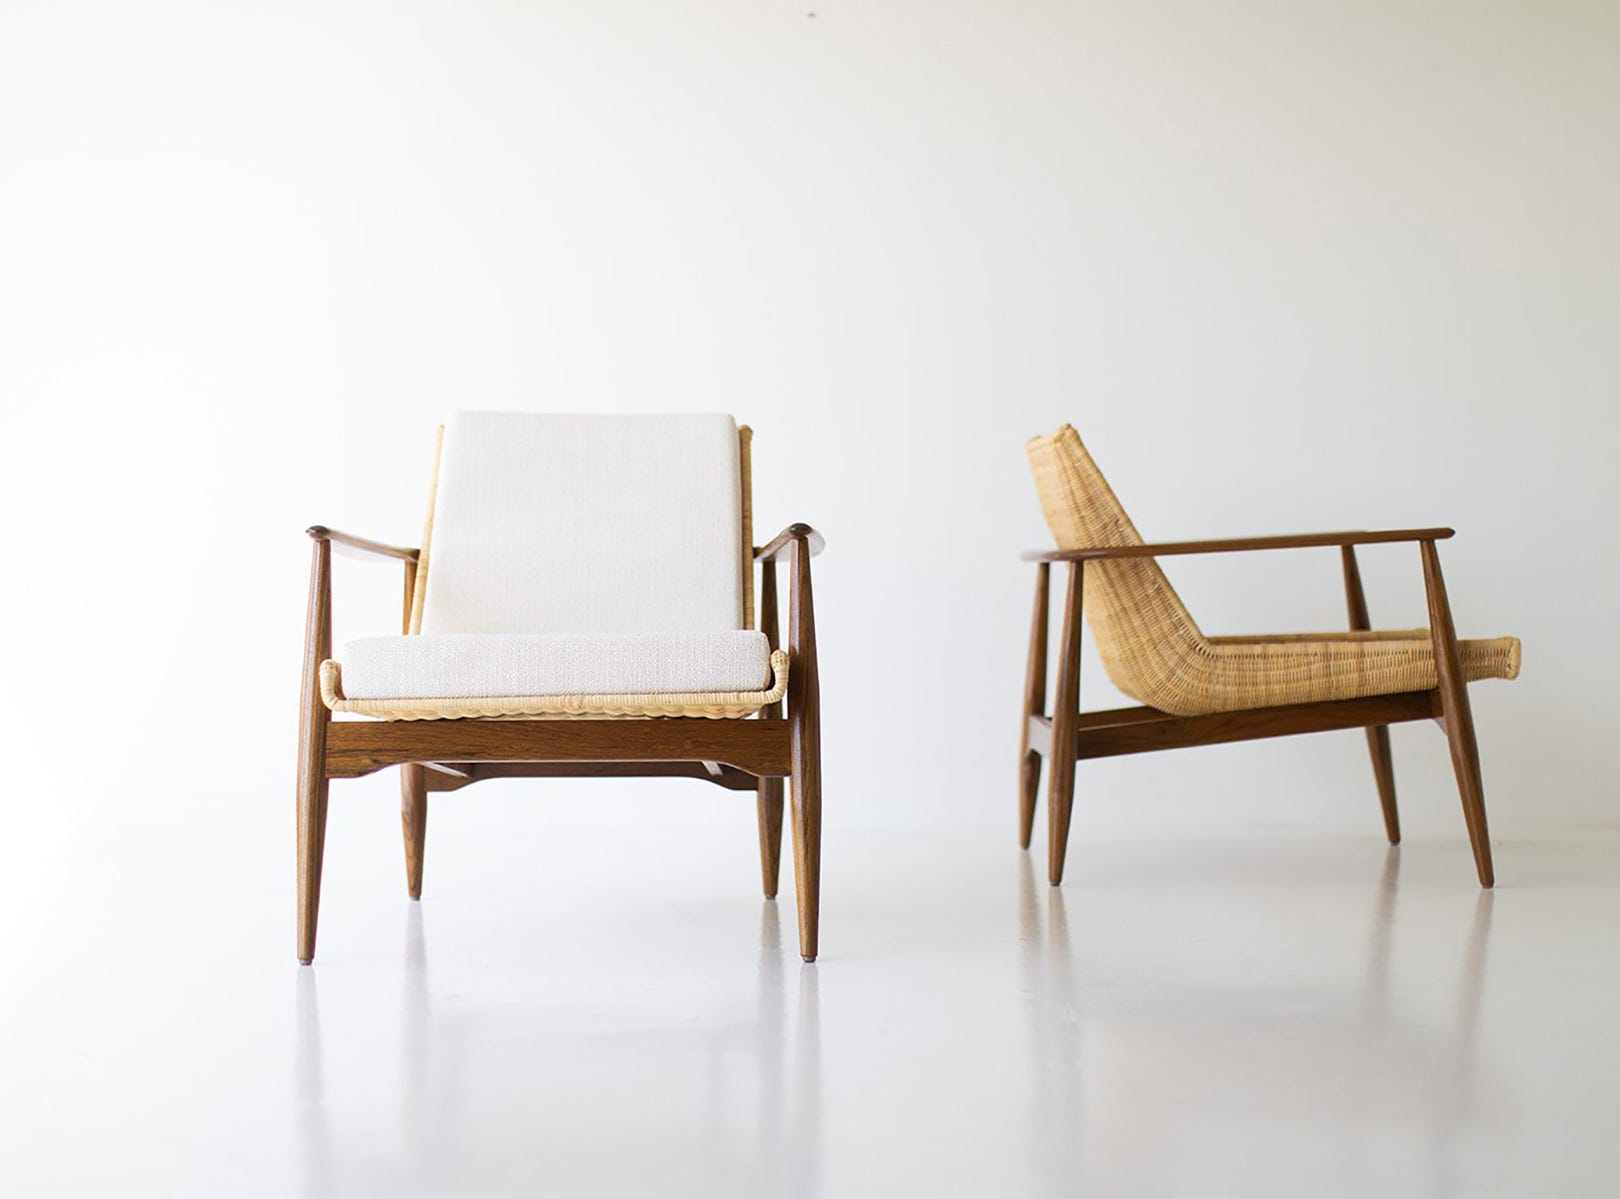 When this Lawrence Peabody chair was introduced in 1962, the rattan sling was imported from Hong Kong. Craft Associates Furniture just reintroduced the design -- but this time, each piece is custom-crafted by artisans in America. Available in solid teak or wicker, the cushion is high-density foam, and the fabric is the customer's choice.